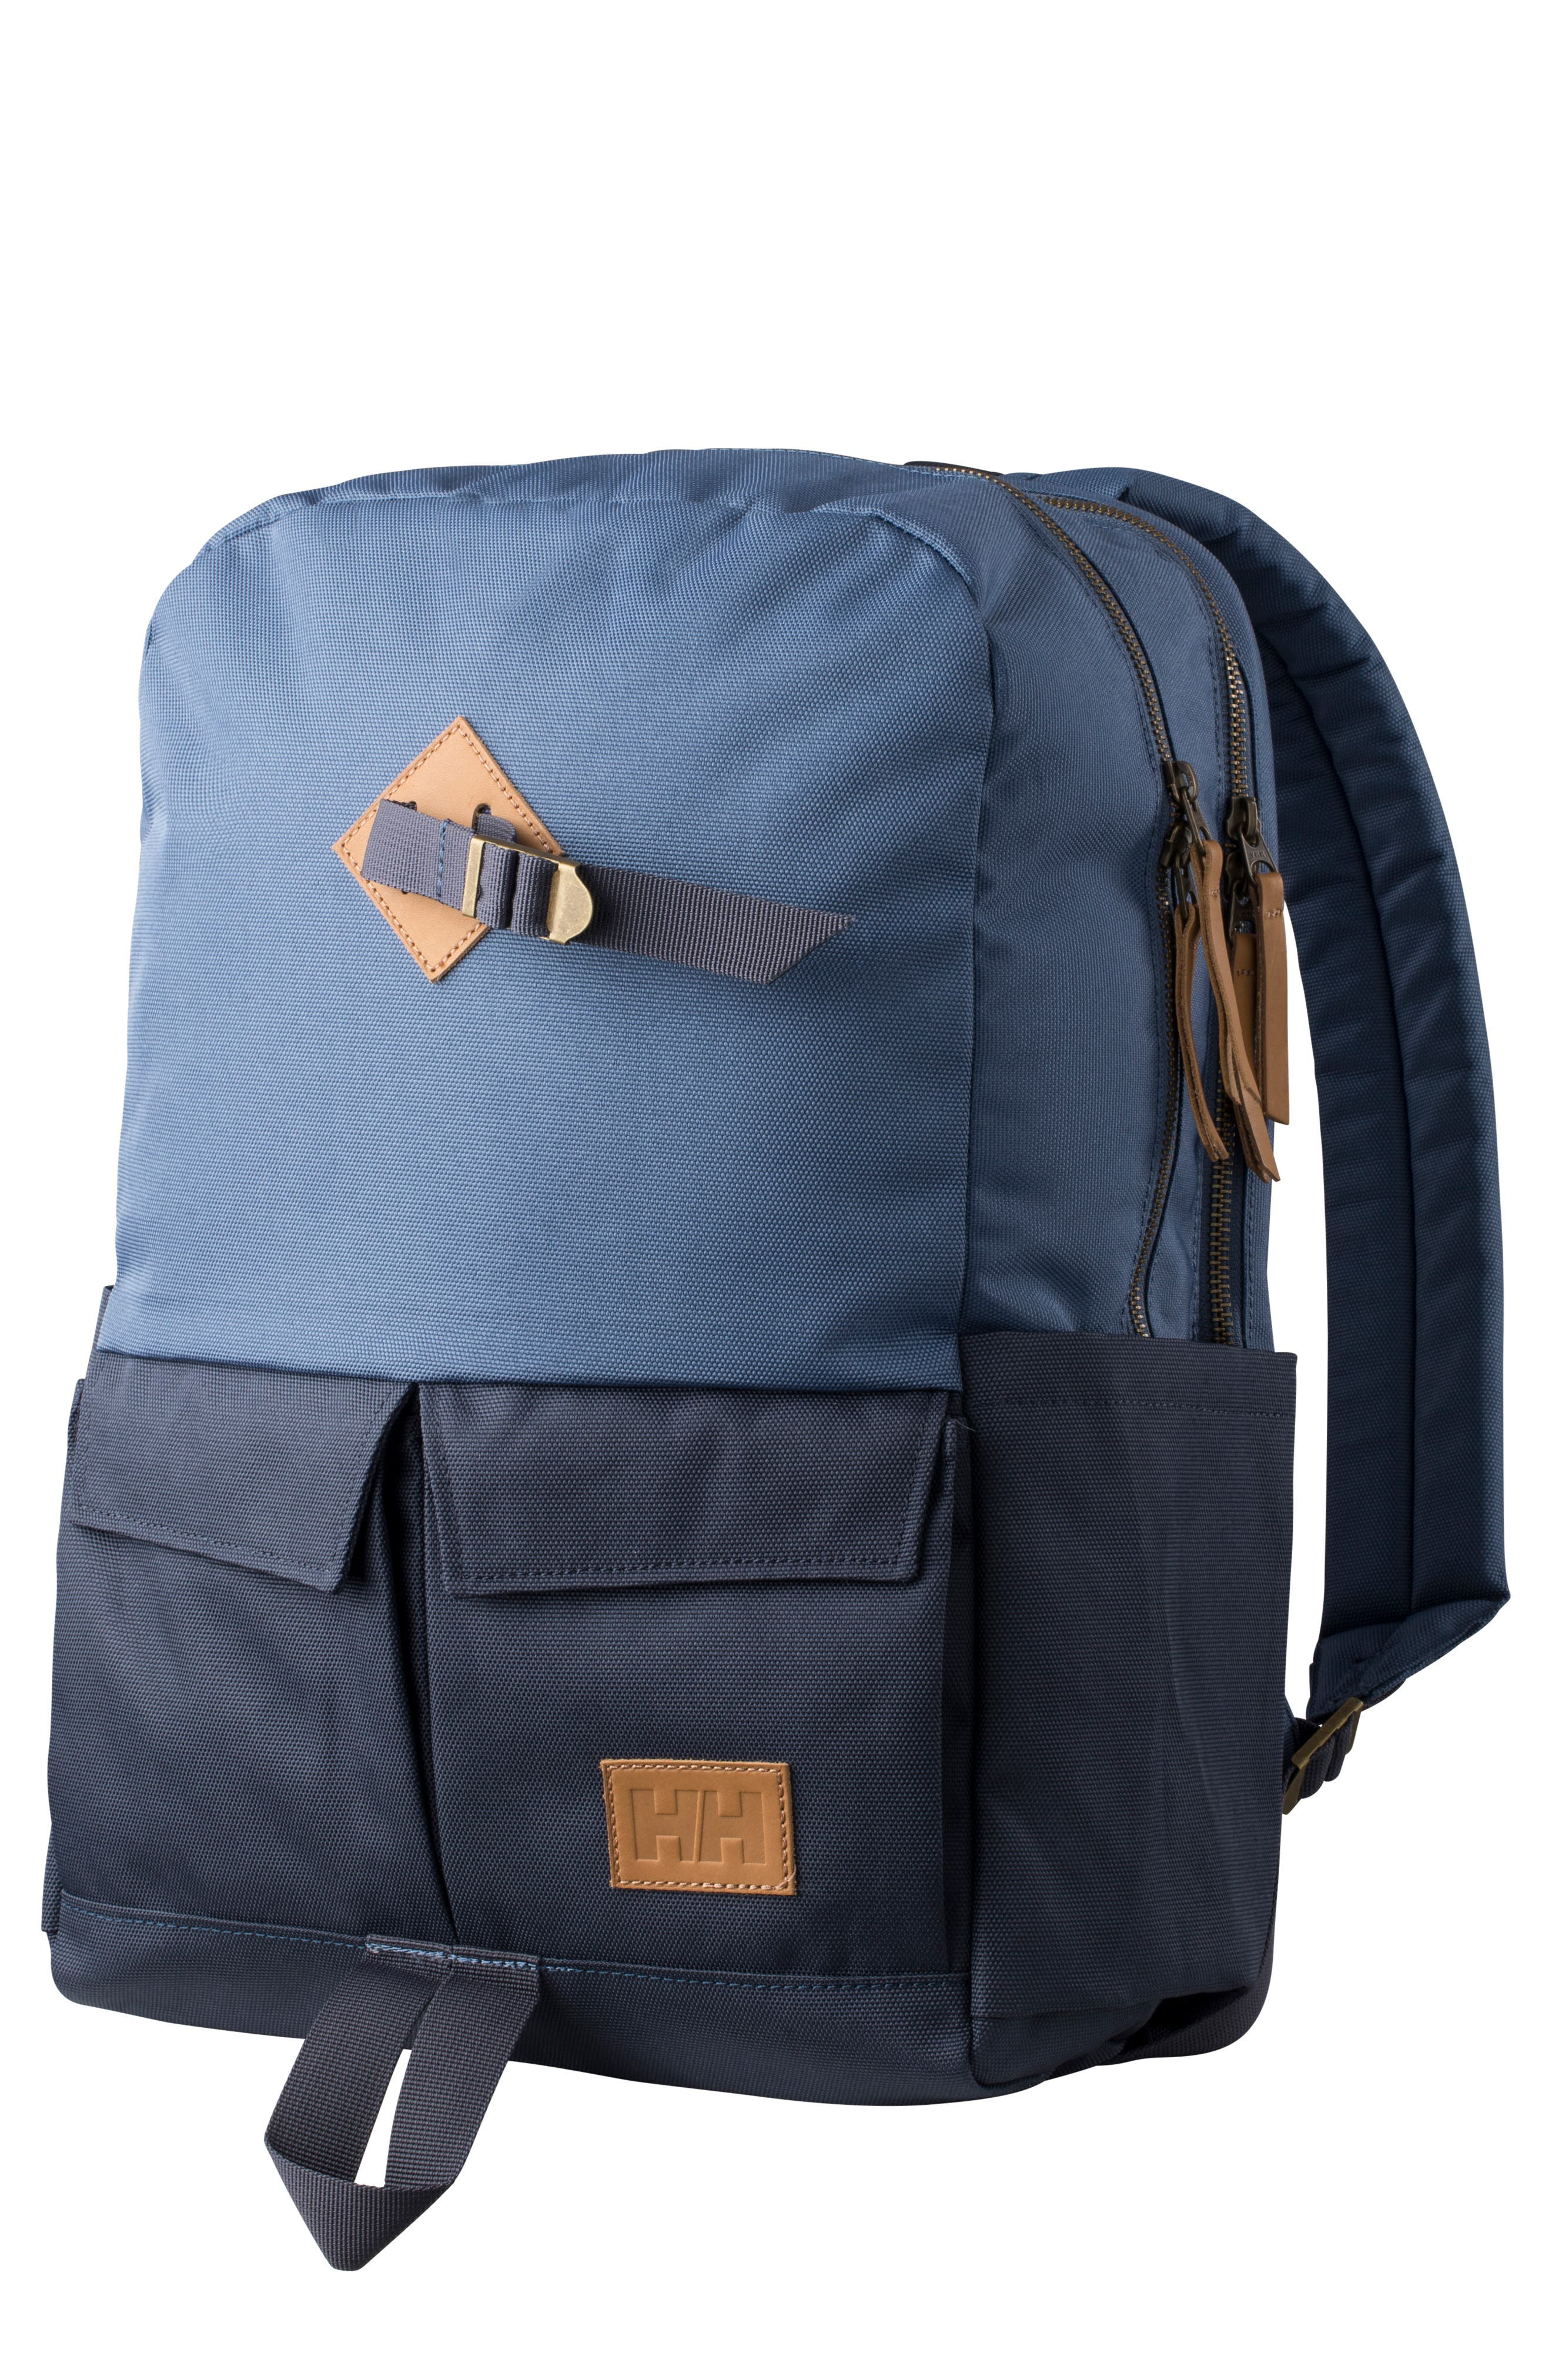 Helly Hansen Bergen Backpack - Grey